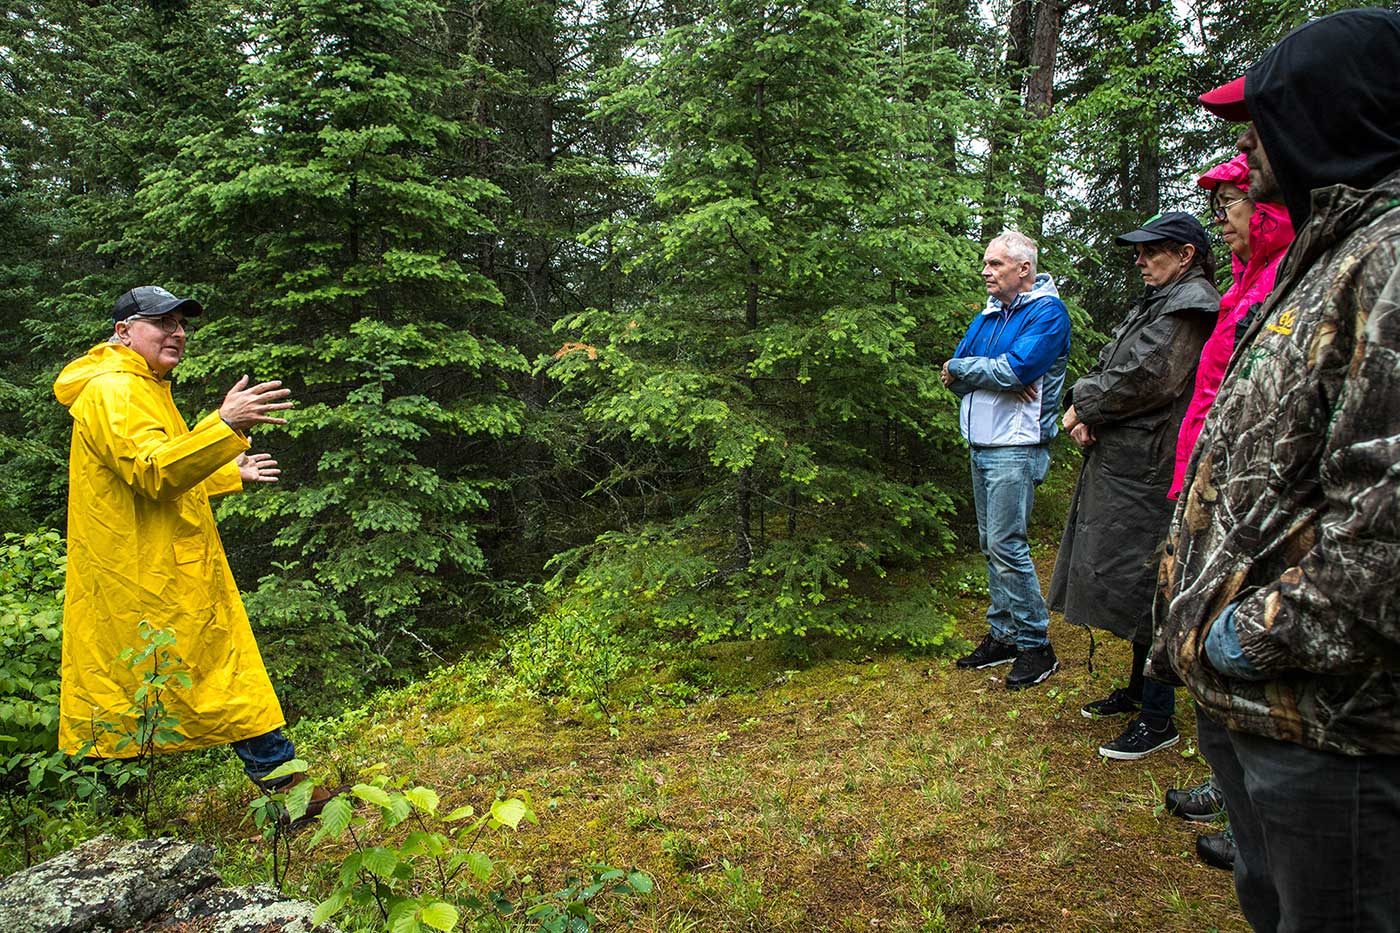 Chris Rutkowski, the preeminent ufologist in Canada and an expert on the Falcon Lake Incident, giving a tour of the landing site in Whiteshell Forest.